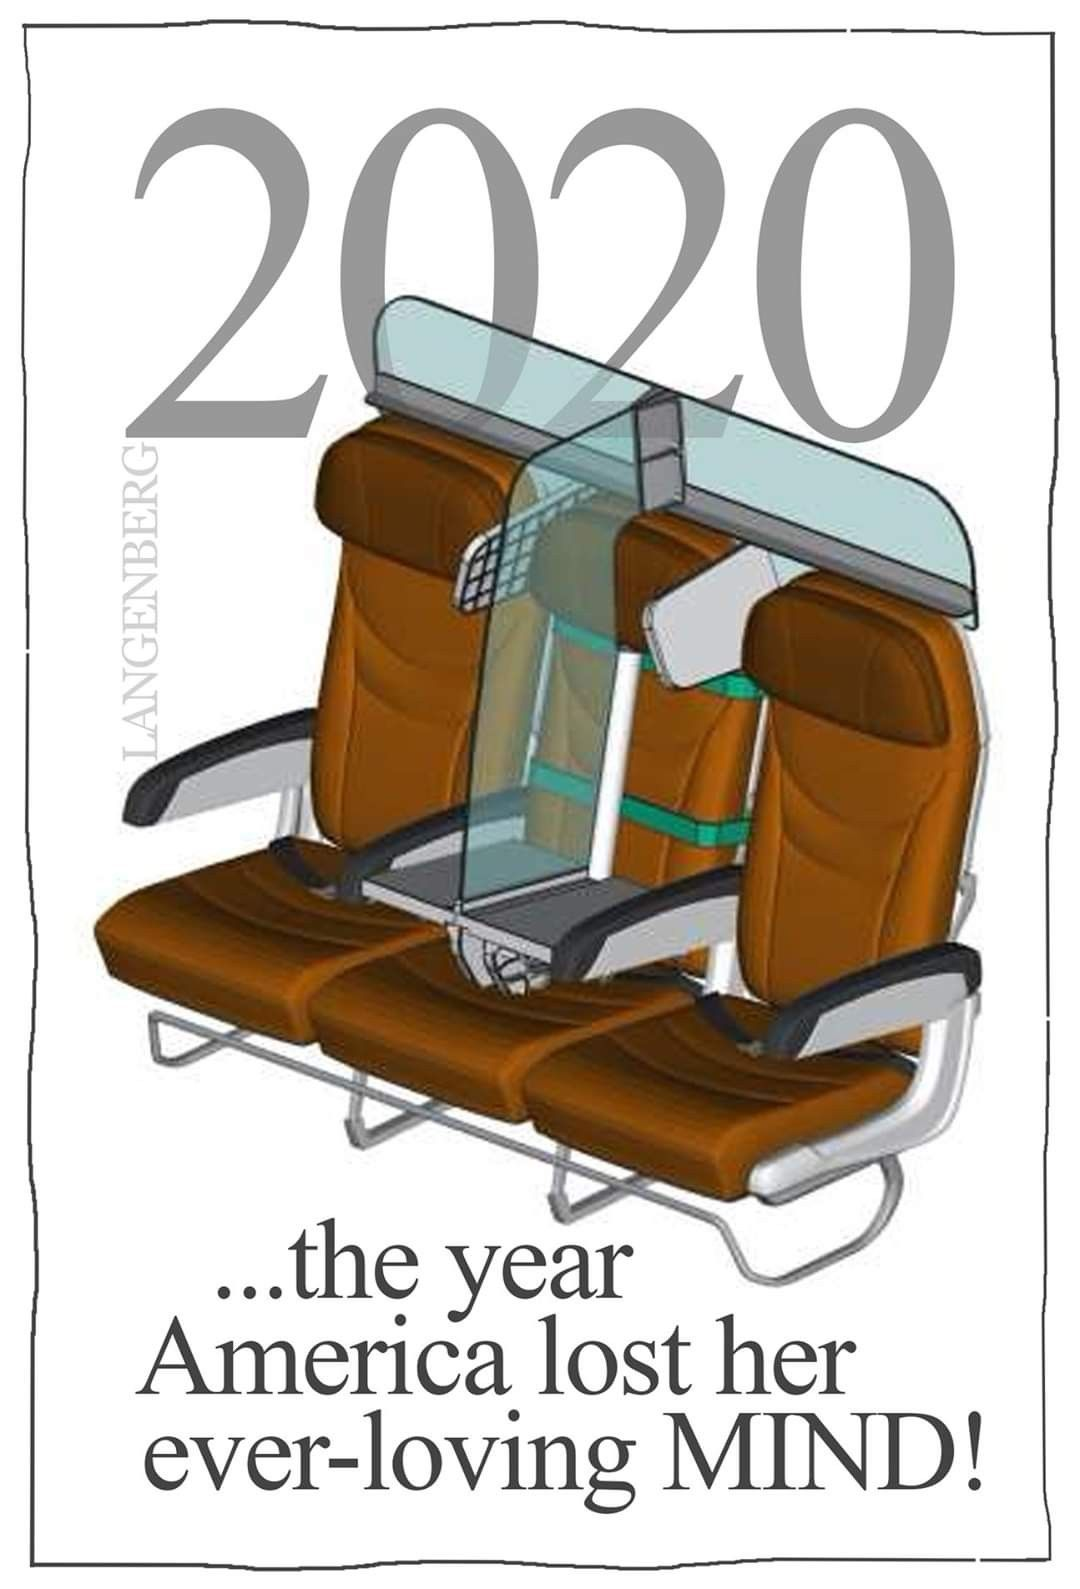 Pin by Sharon J Price on America in 2020 Massage chair